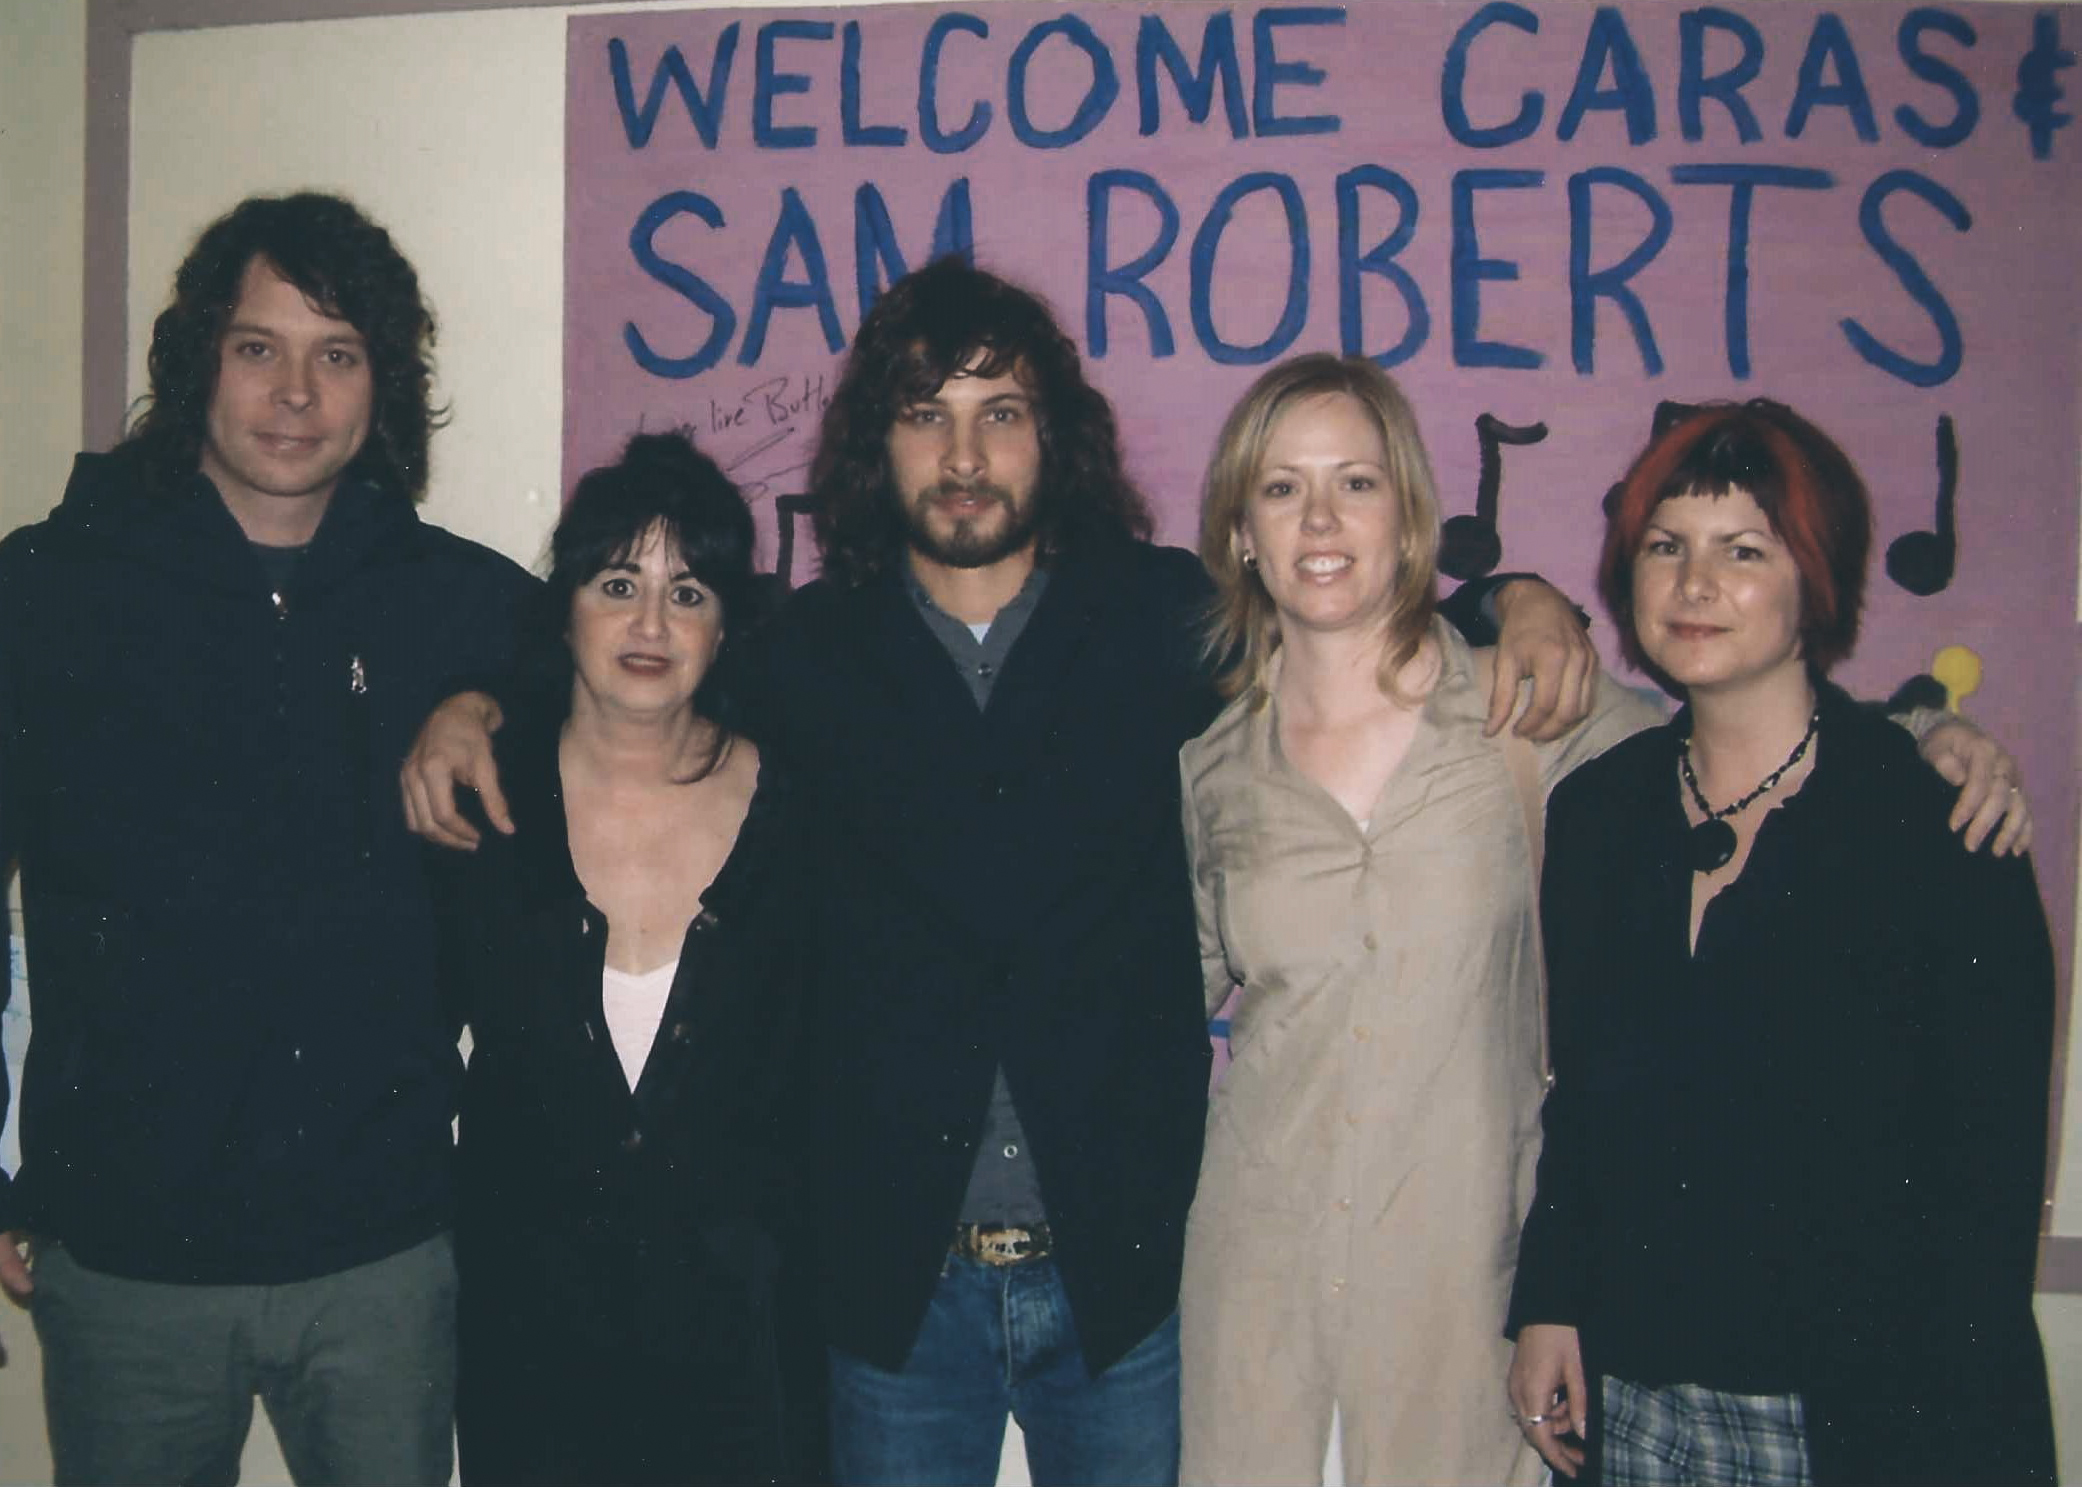 Sam Roberts event in Montreal, 2004